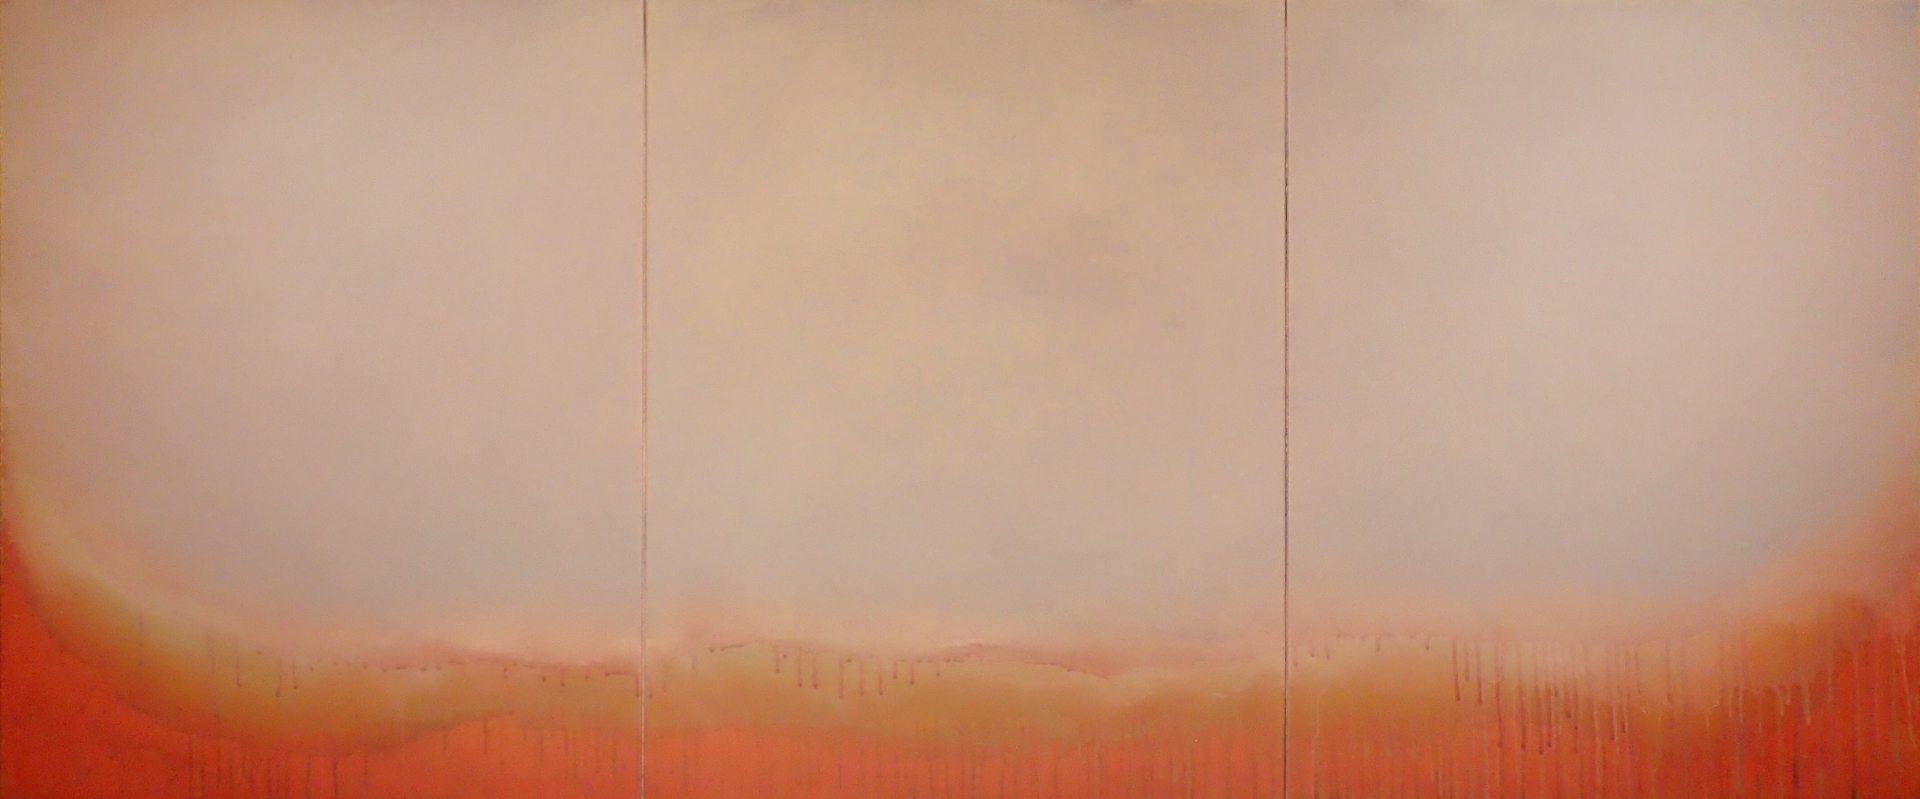 """Silent Search - No. 38, 2015, acrylic on canvas, 28"""" x 66"""""""